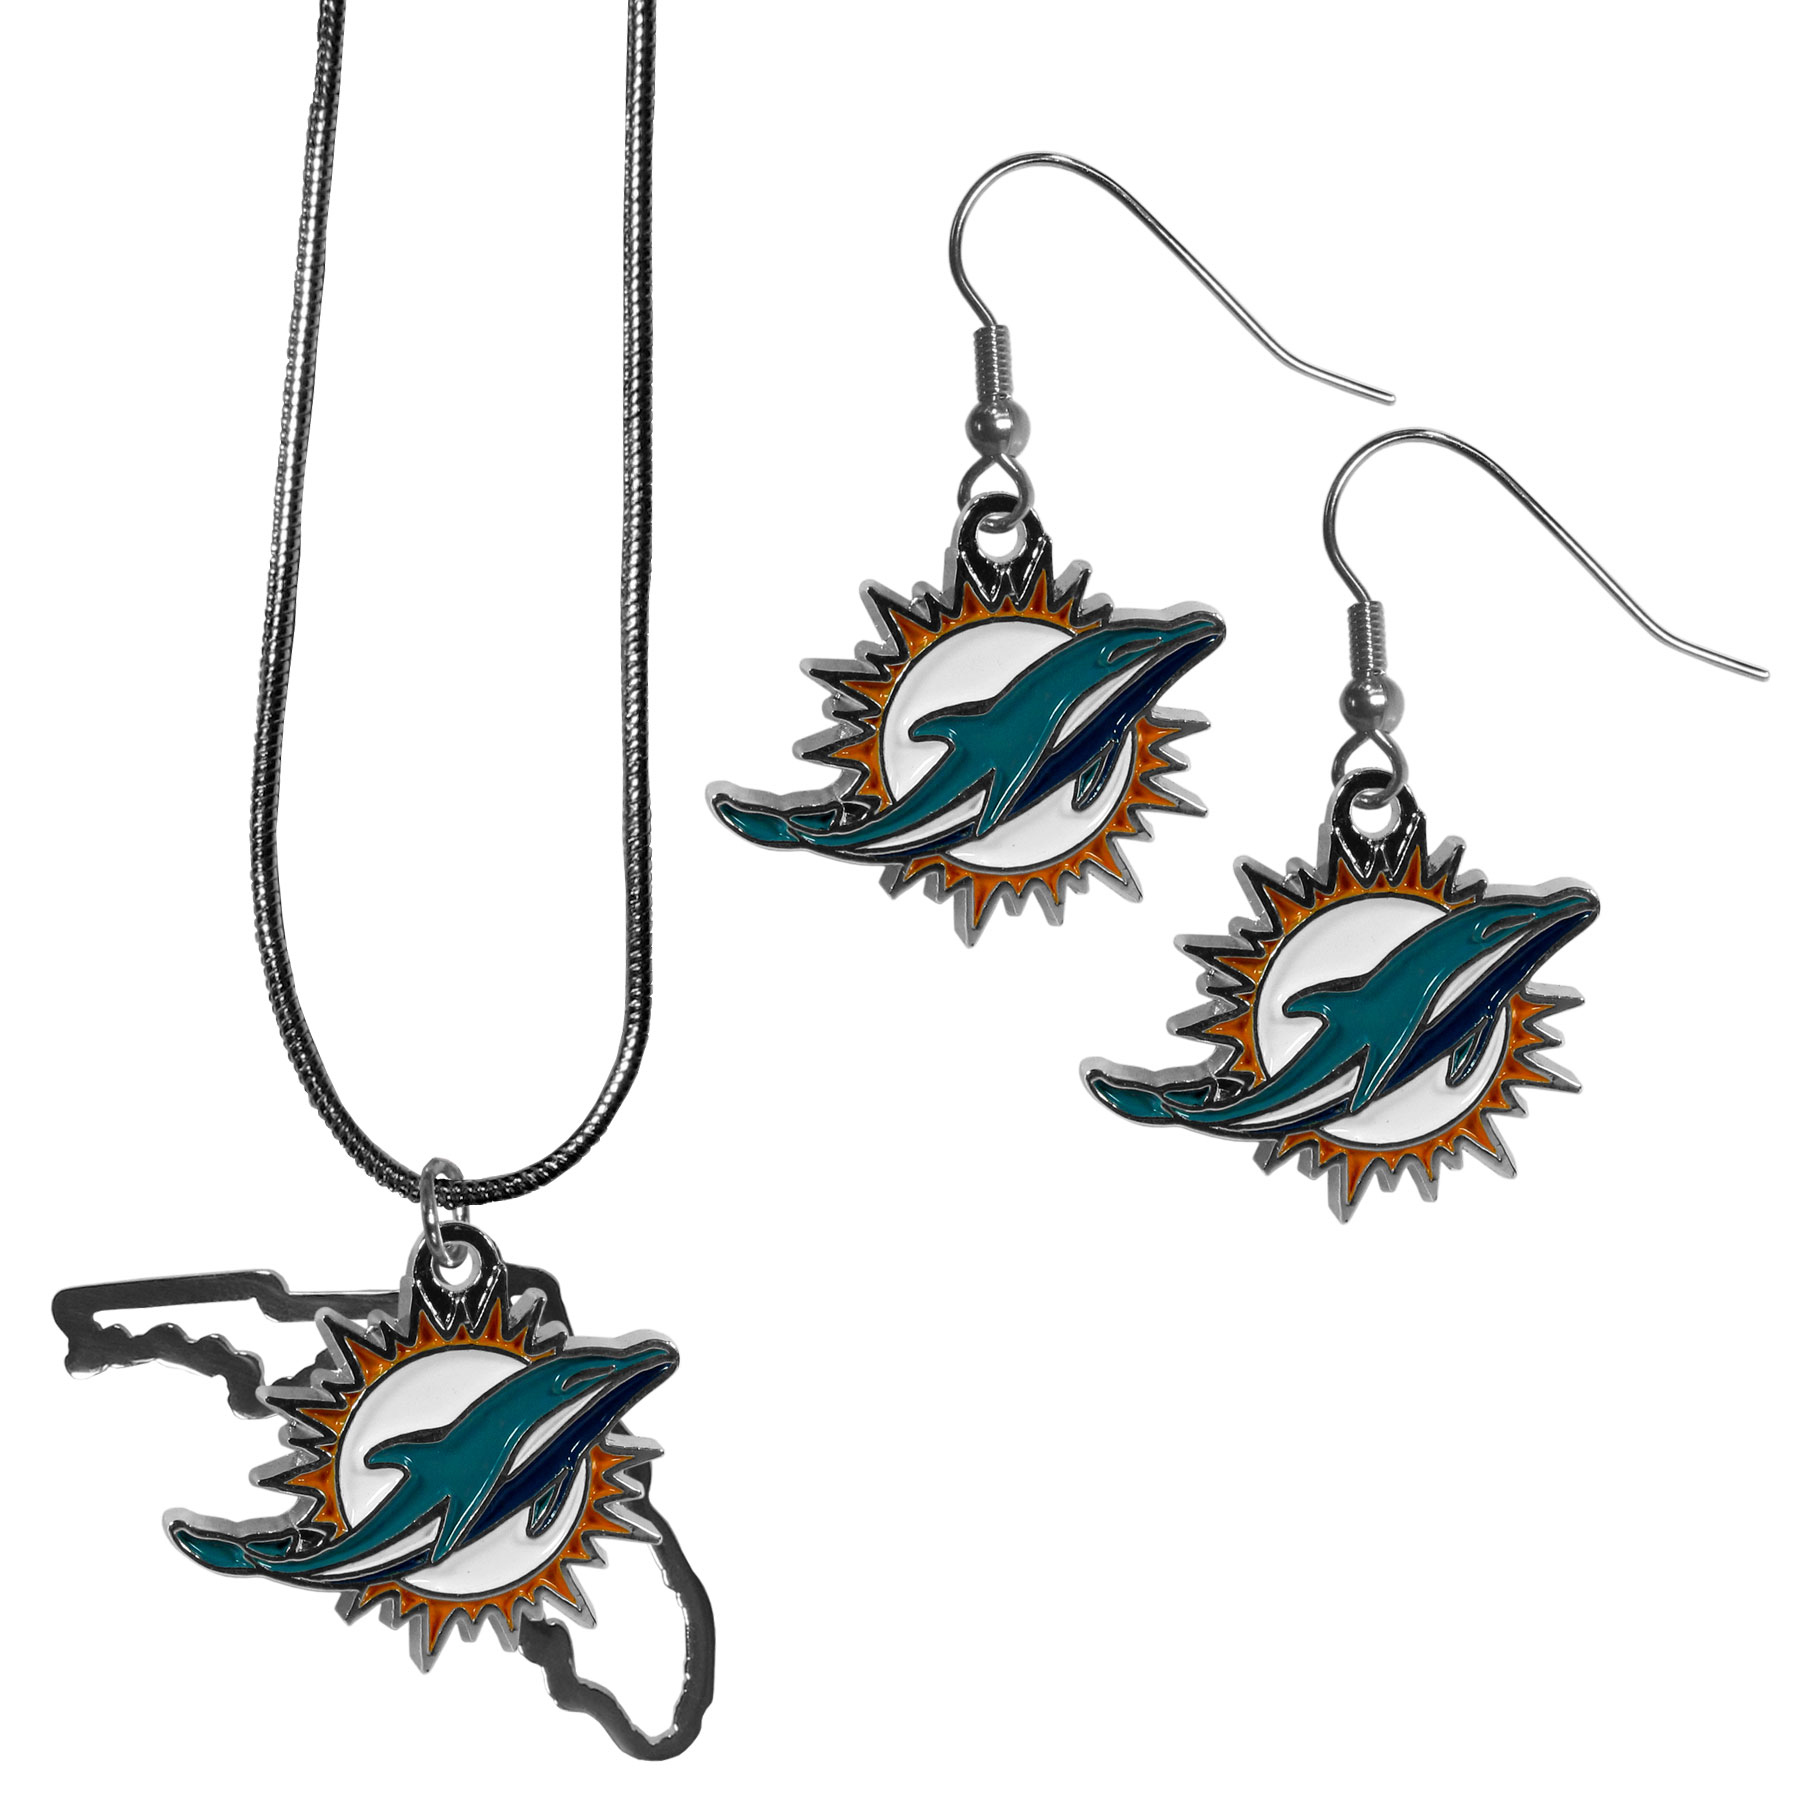 Miami Dolphins Dangle Earrings and State Necklace Set - Get in on the trend! State themes are a trend that just keeps getting more popular and this jewelry set takes the state style and give it a sporty twist with a Miami Dolphins necklace that features an Arizona state outline charm paired with a beautiful team charm and matching team charm dangle earrings. The earrings feature hypoallergenic fishhook posts that are nickel free.